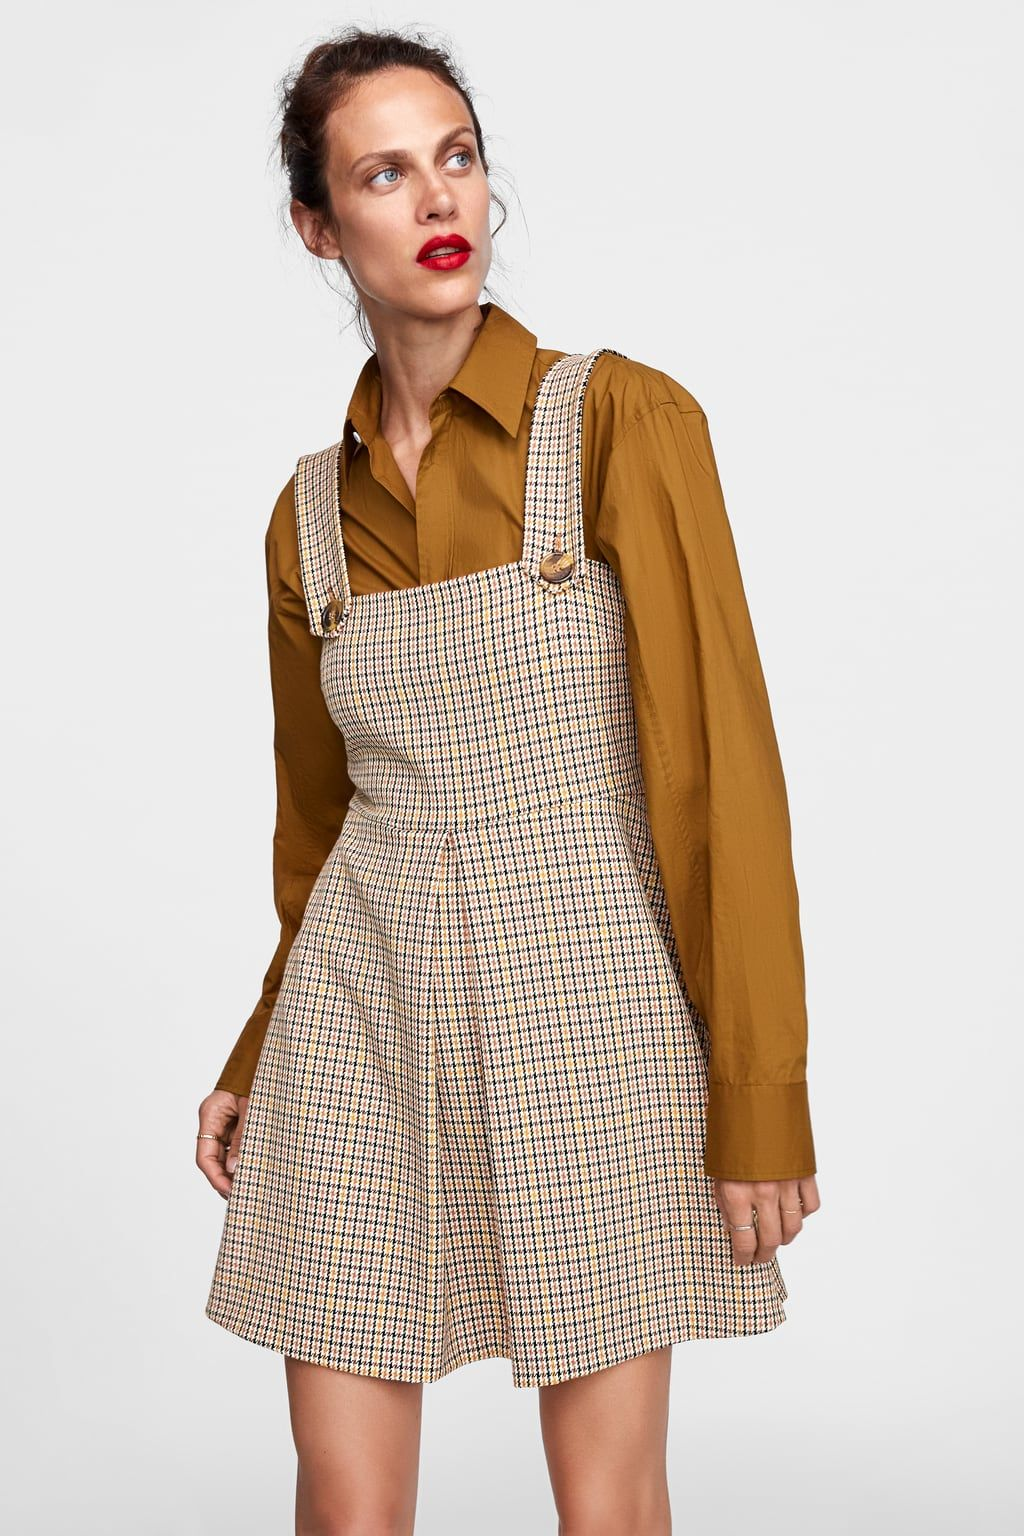 eada00a0 Image 2 of PLAID OVERALL DRESS from Zara | MADELINE in 2019 ...